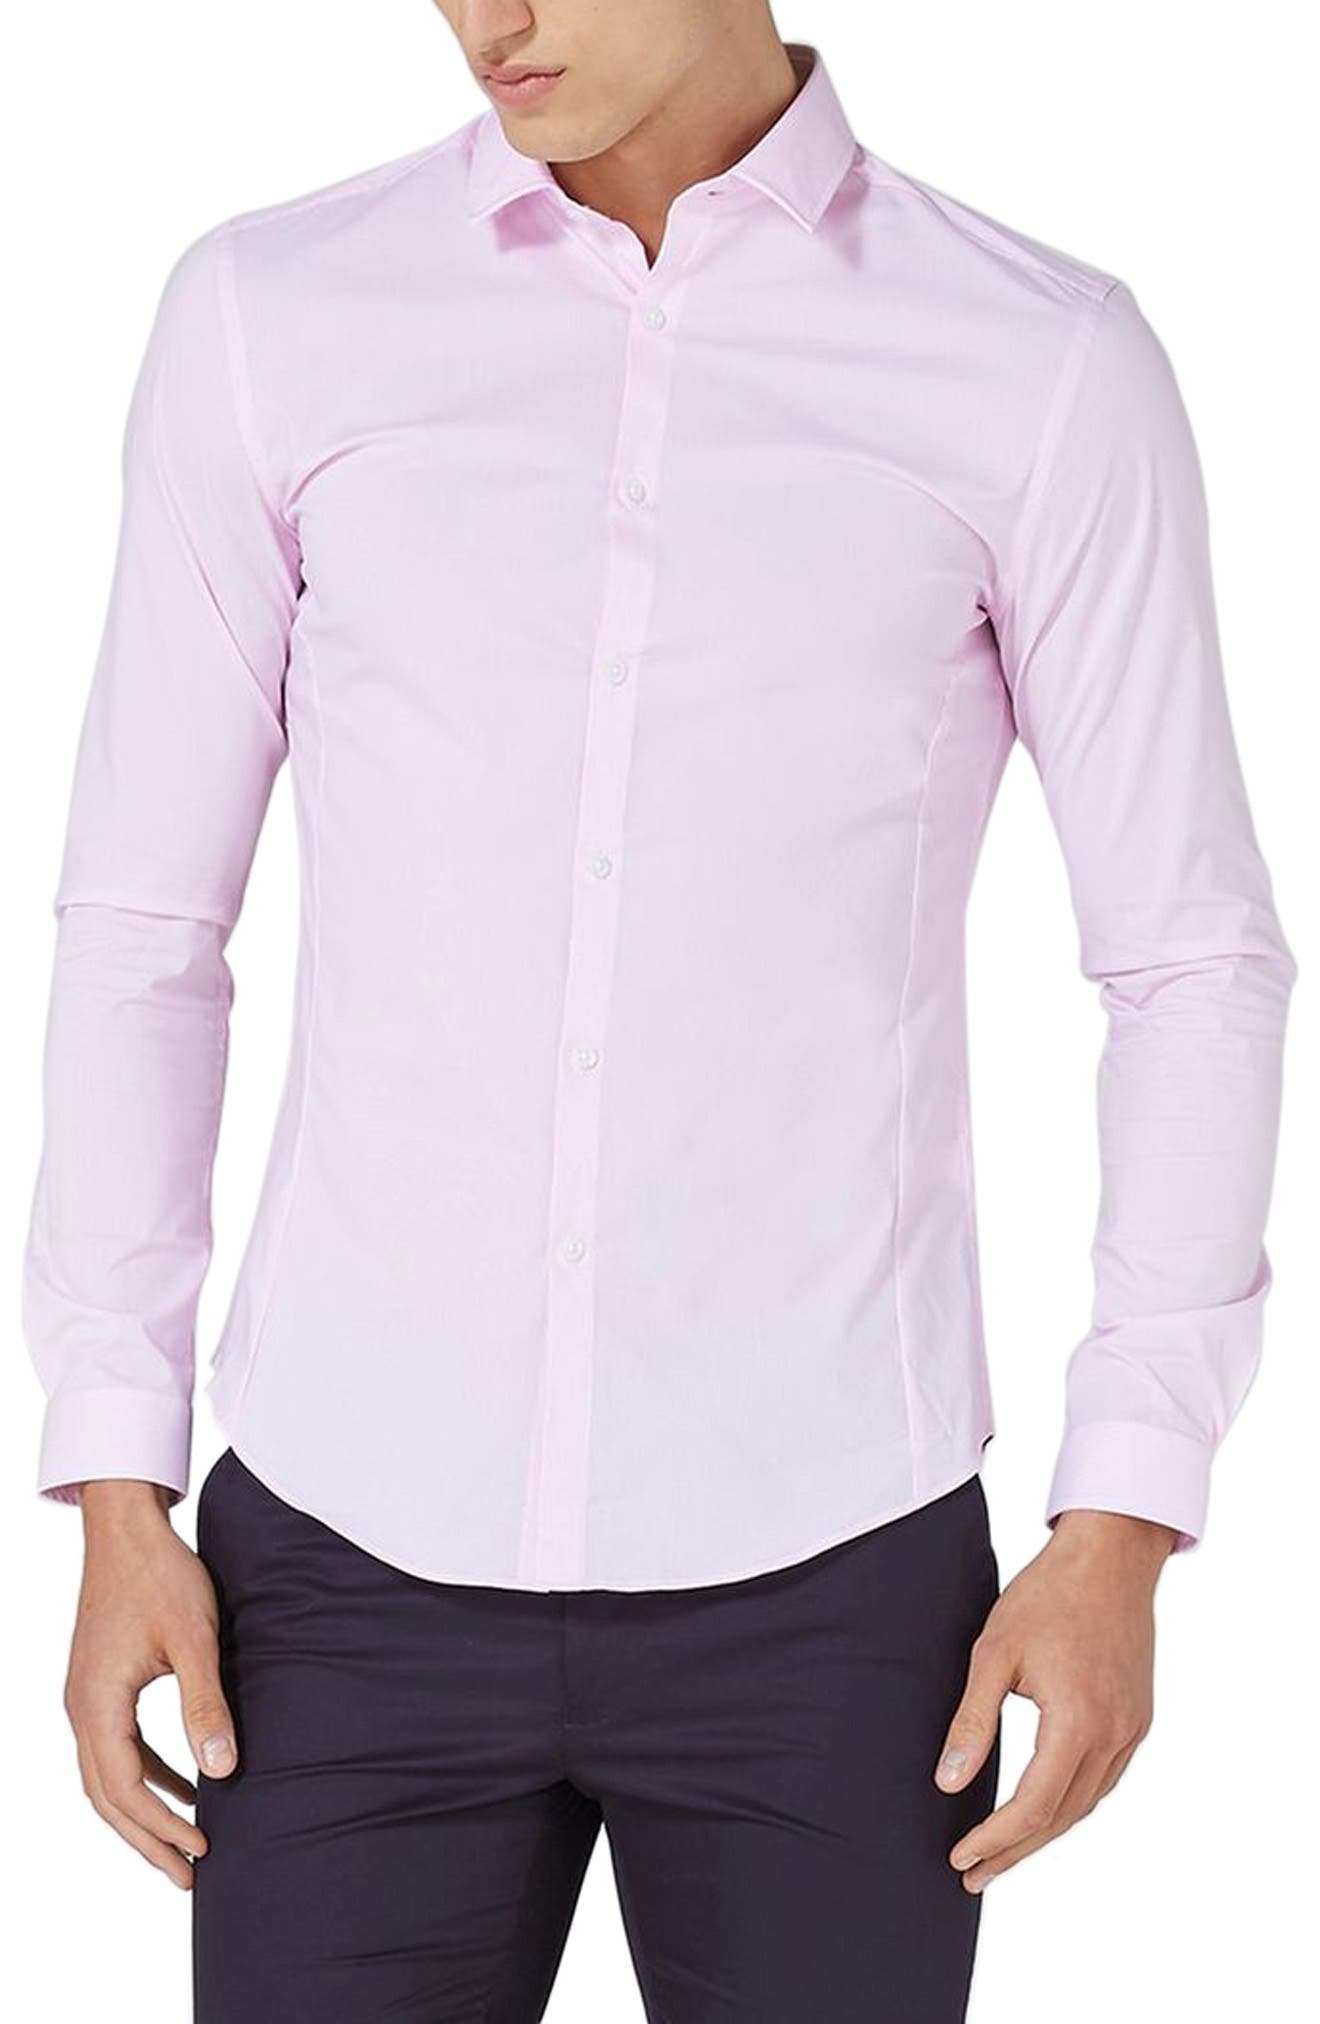 Muscle Fit Smart Shirt,                         Main,                         color, Pink Multi